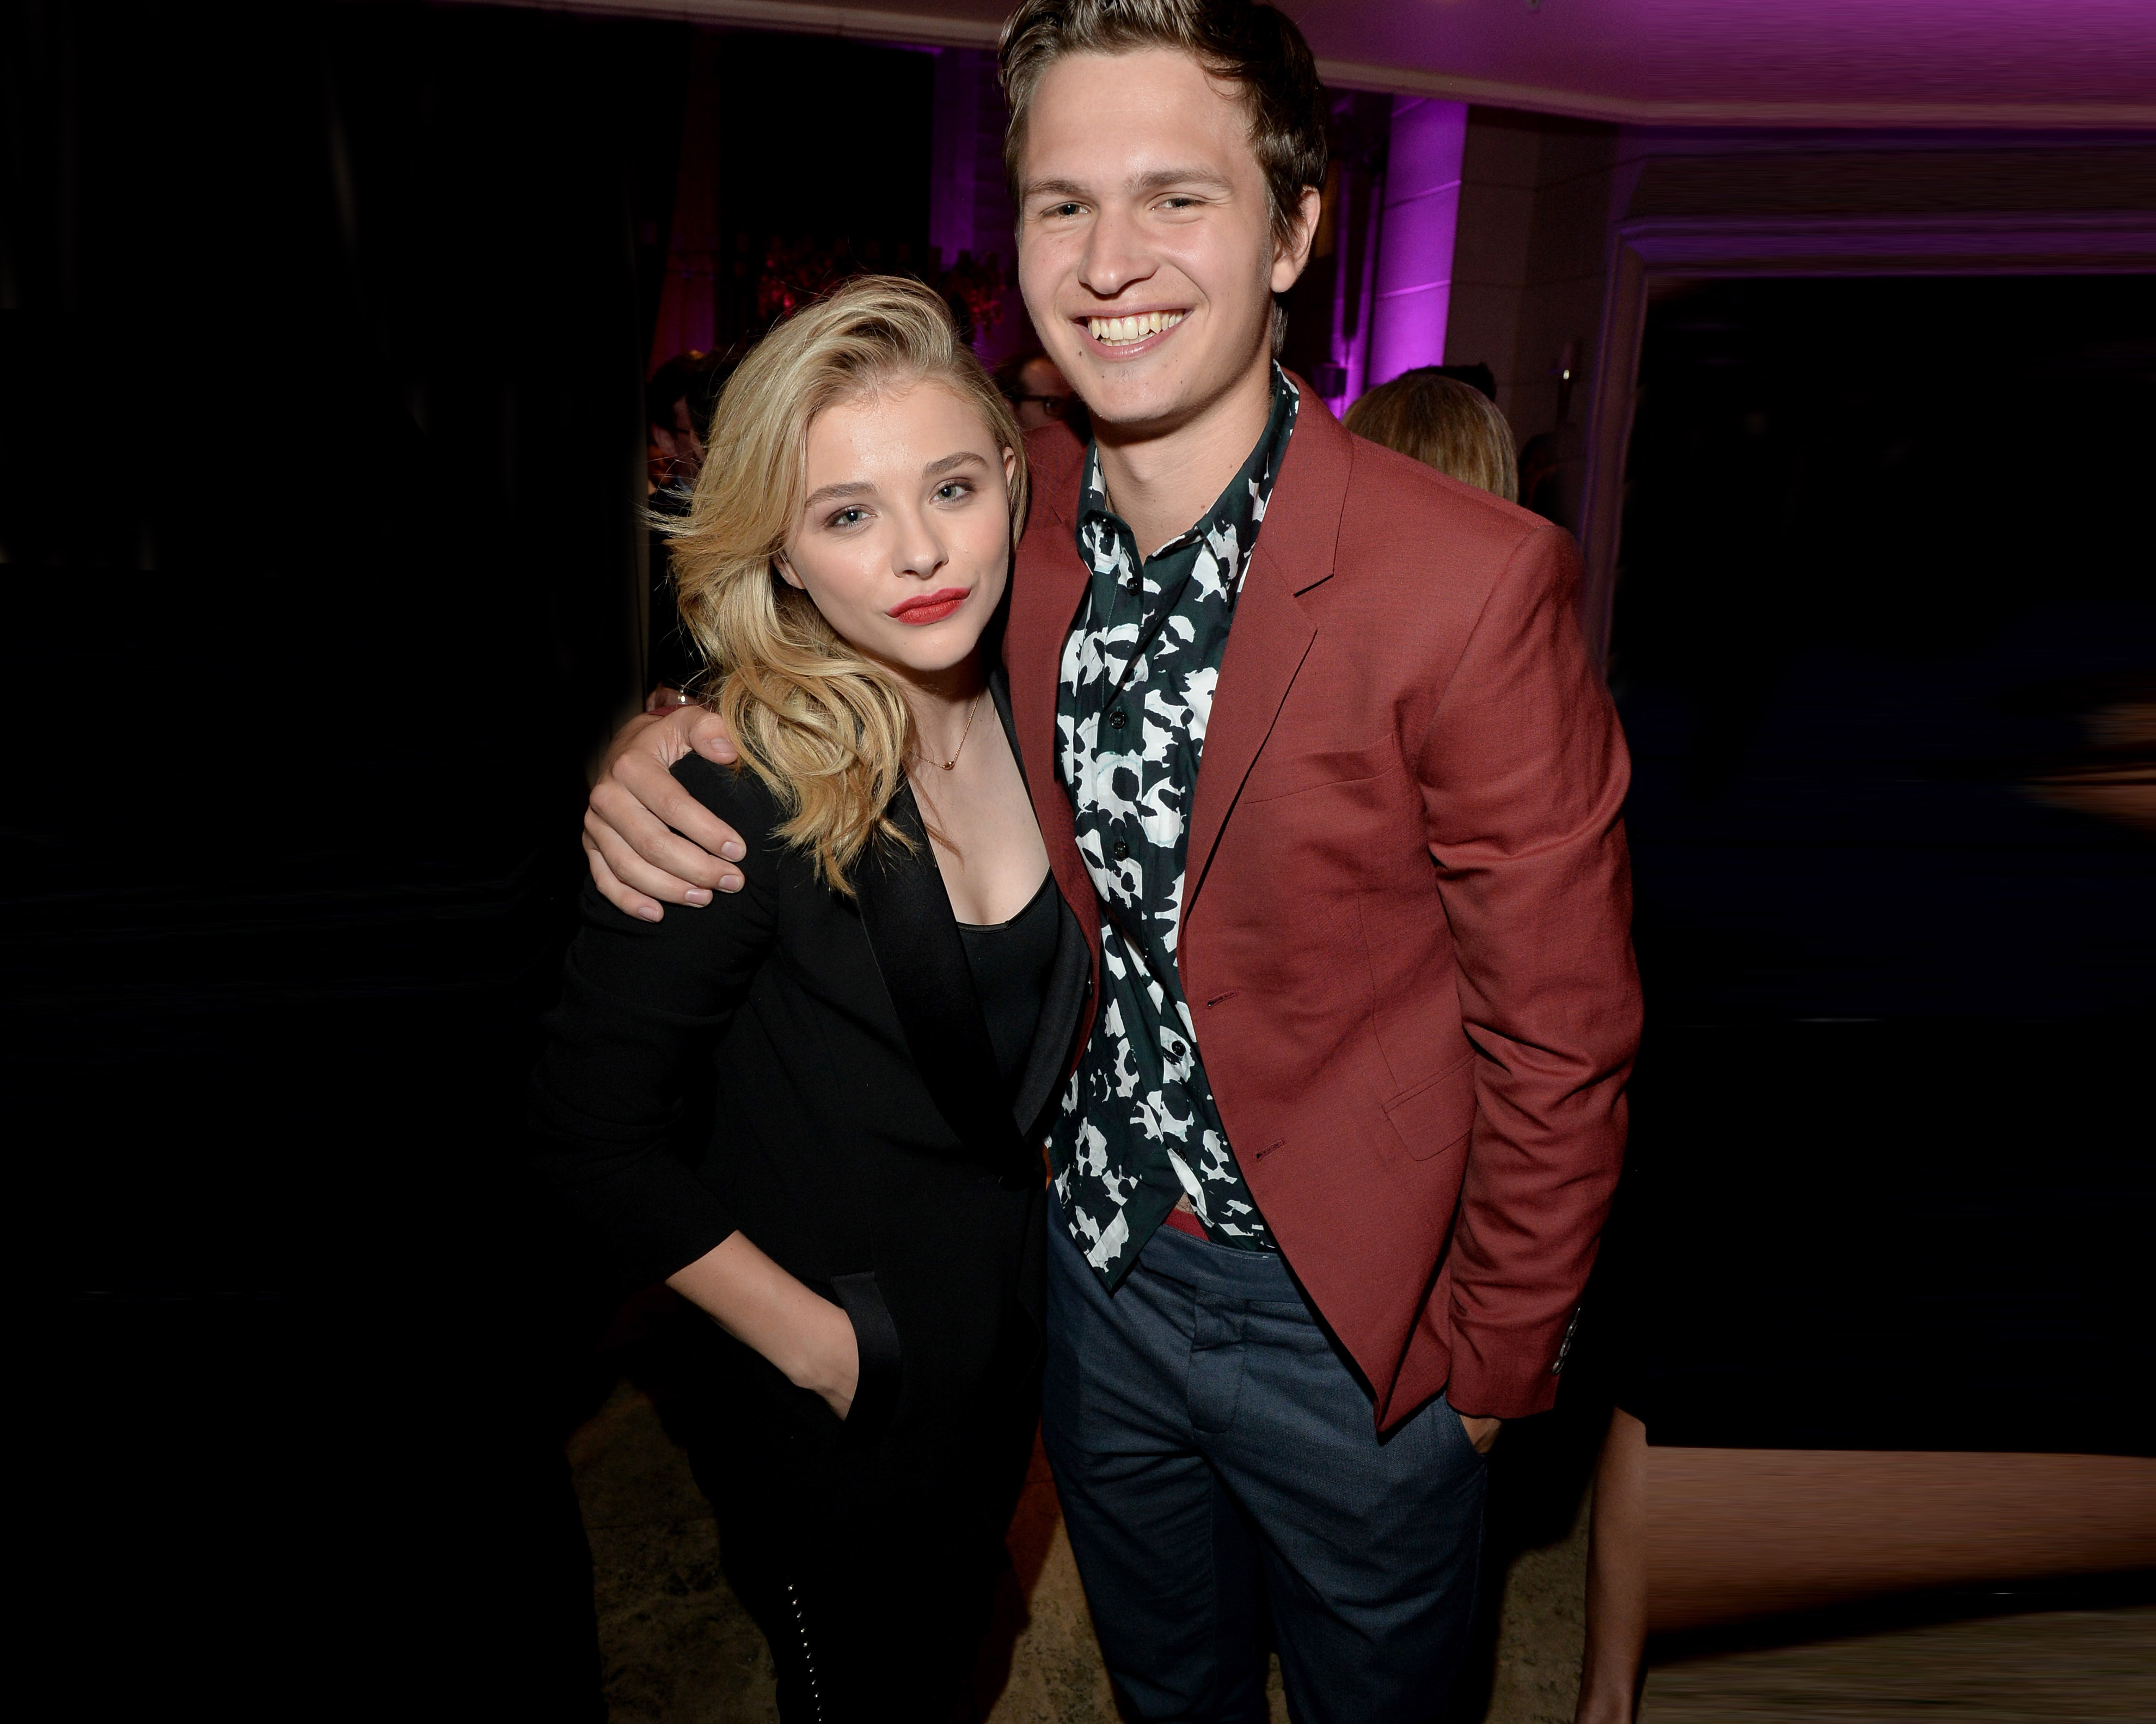 ansel-elgort-chloe-moretz-new-movie